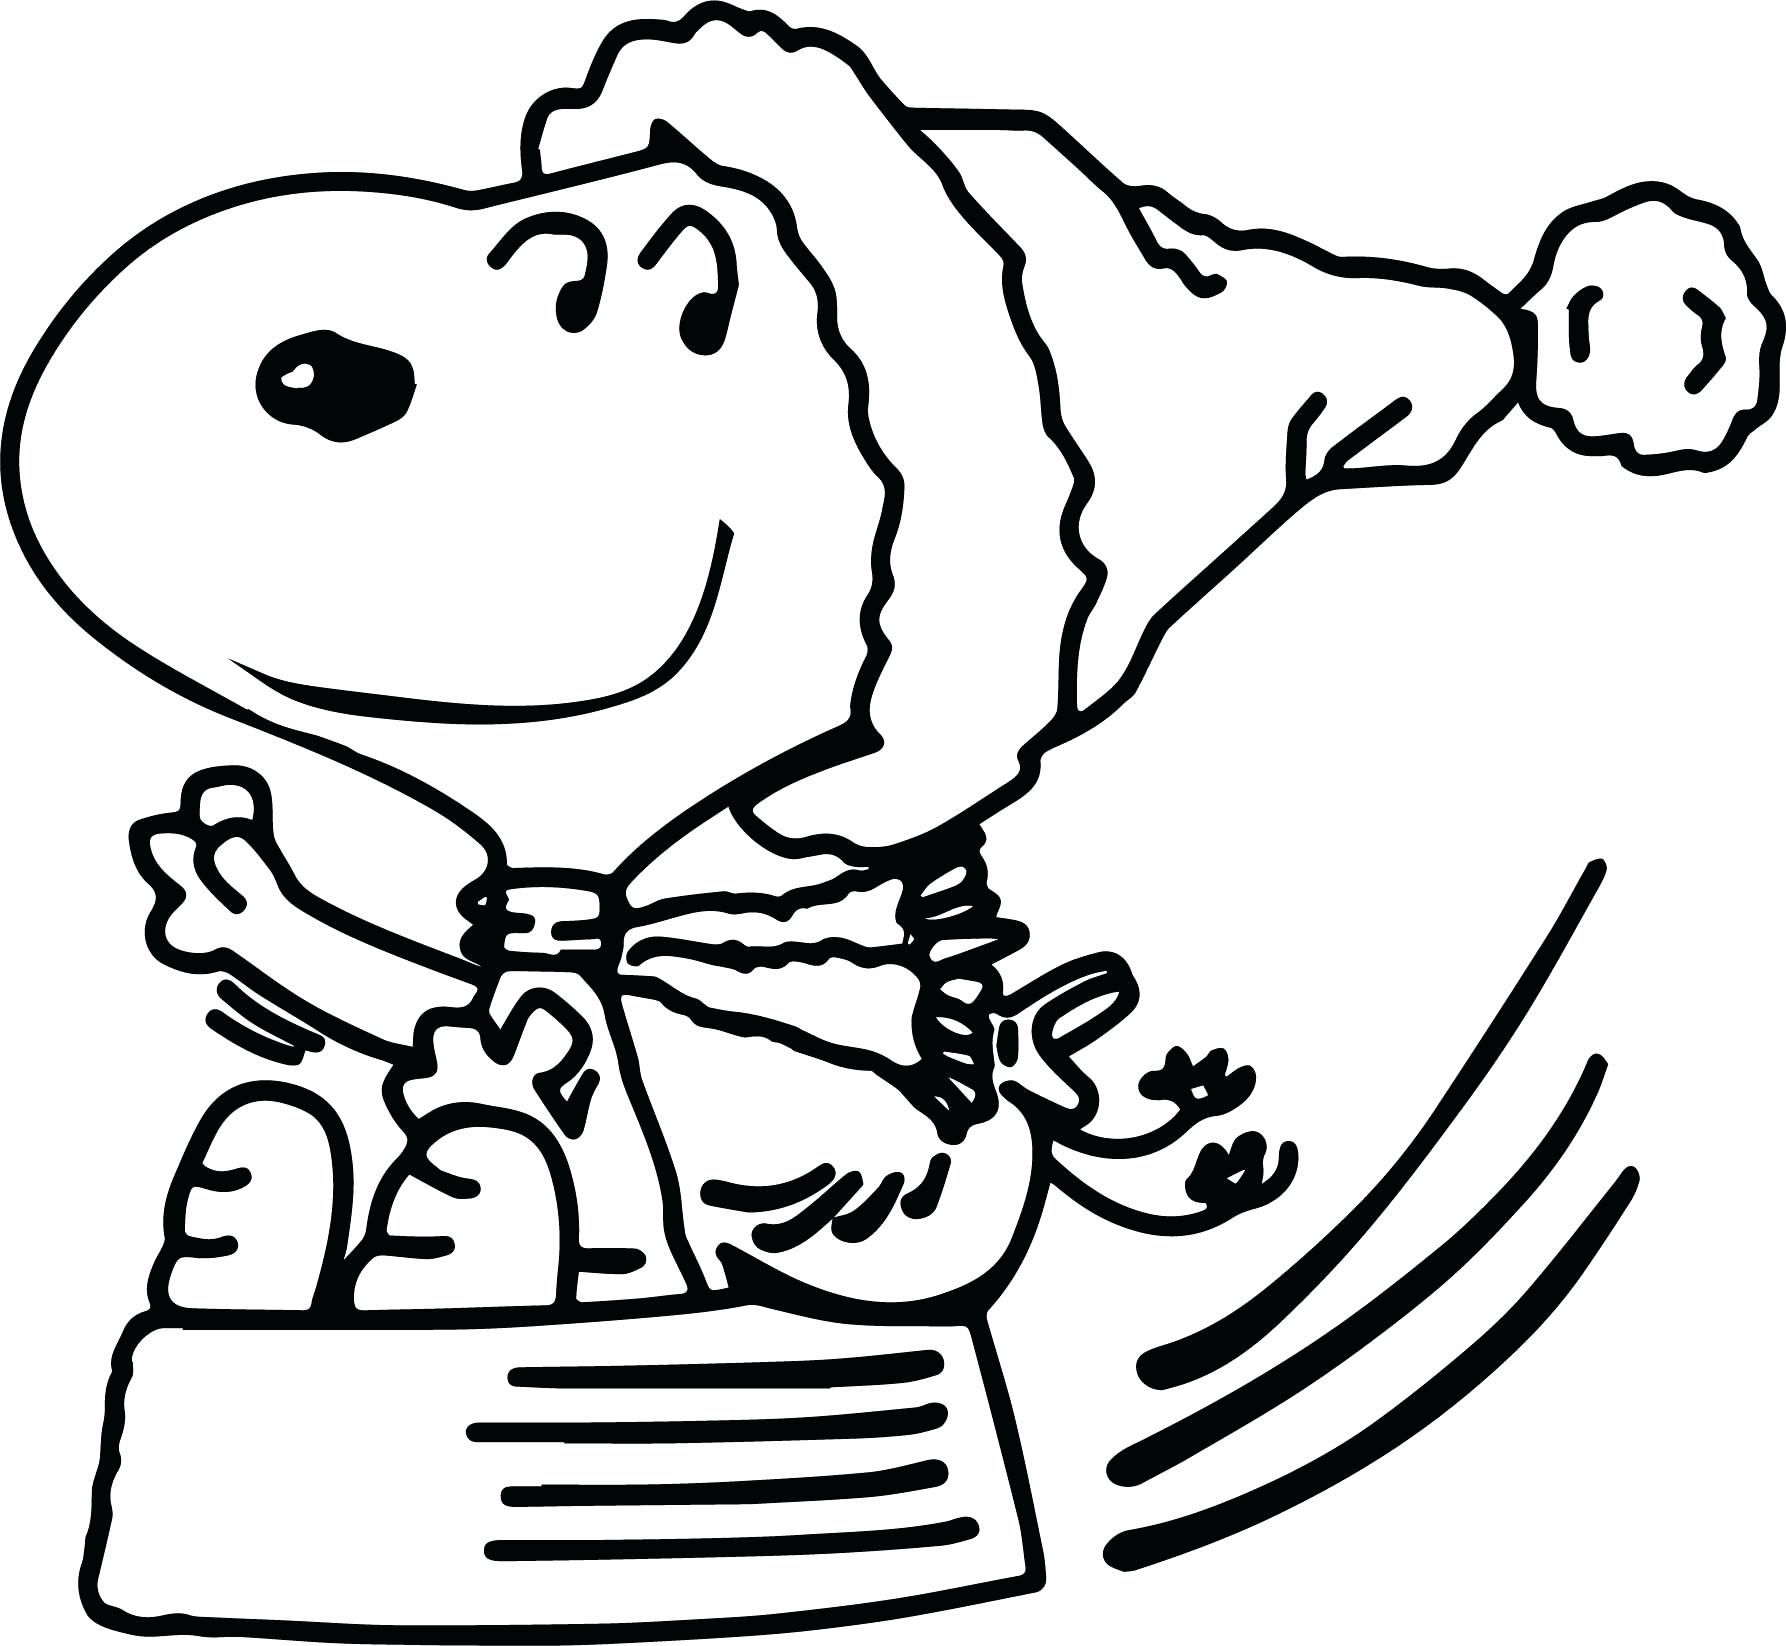 1786x1646 Coloring Santa Sleigh Coloring Page Pages And His. Santa Sleigh